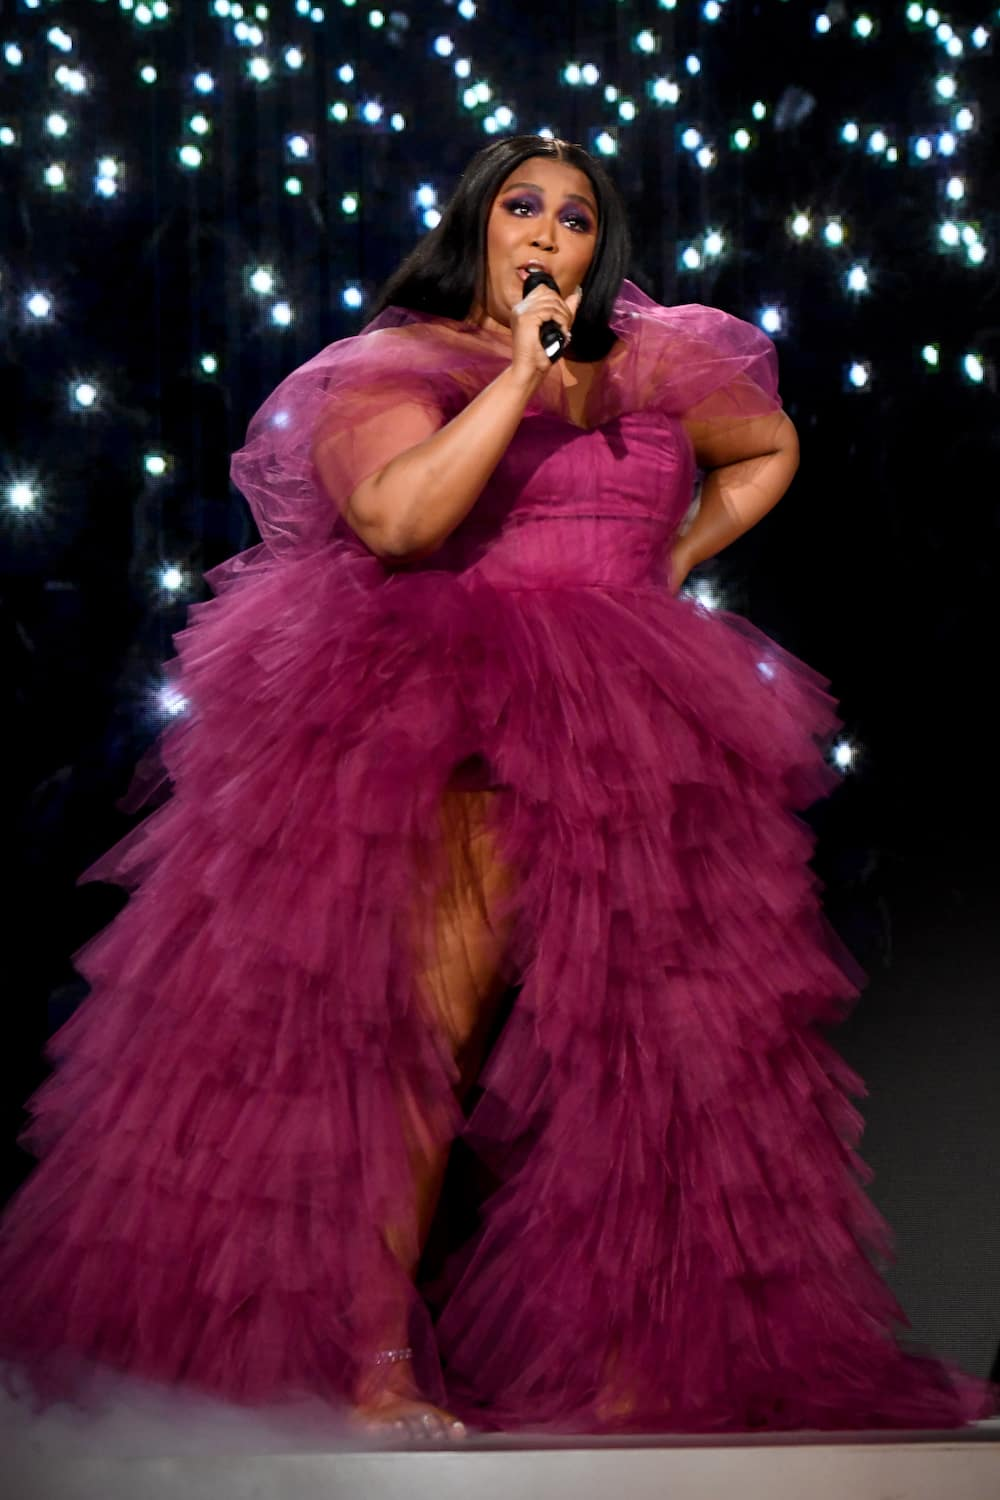 Lizzo's purple outfit